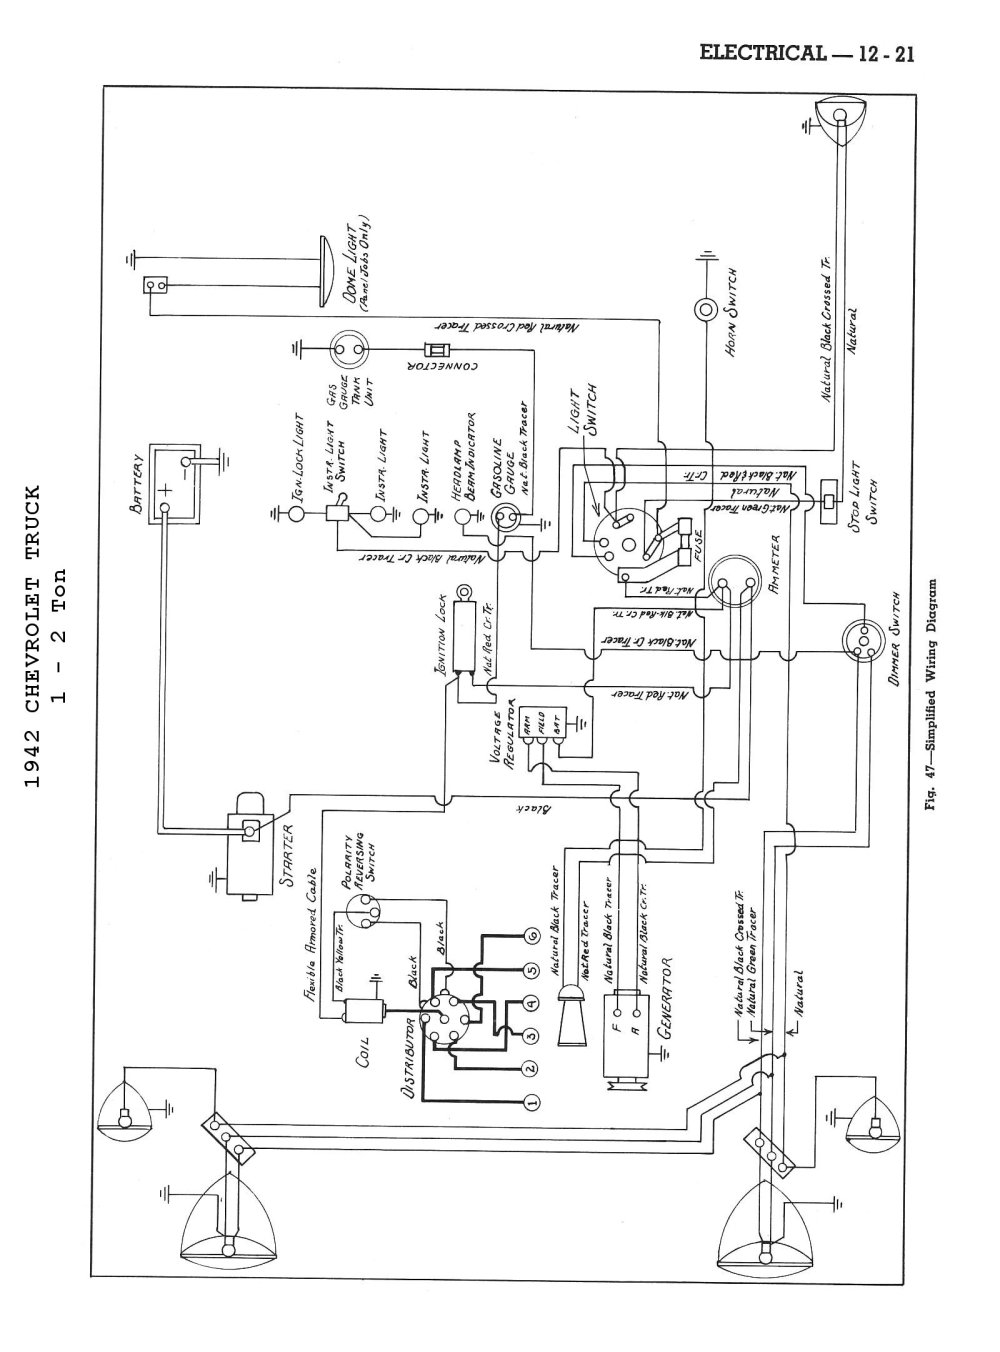 medium resolution of 57 chevy horn wire diagram wiring librarychevy wiring diagrams 56 bel air wiring 1942 4x2 truck